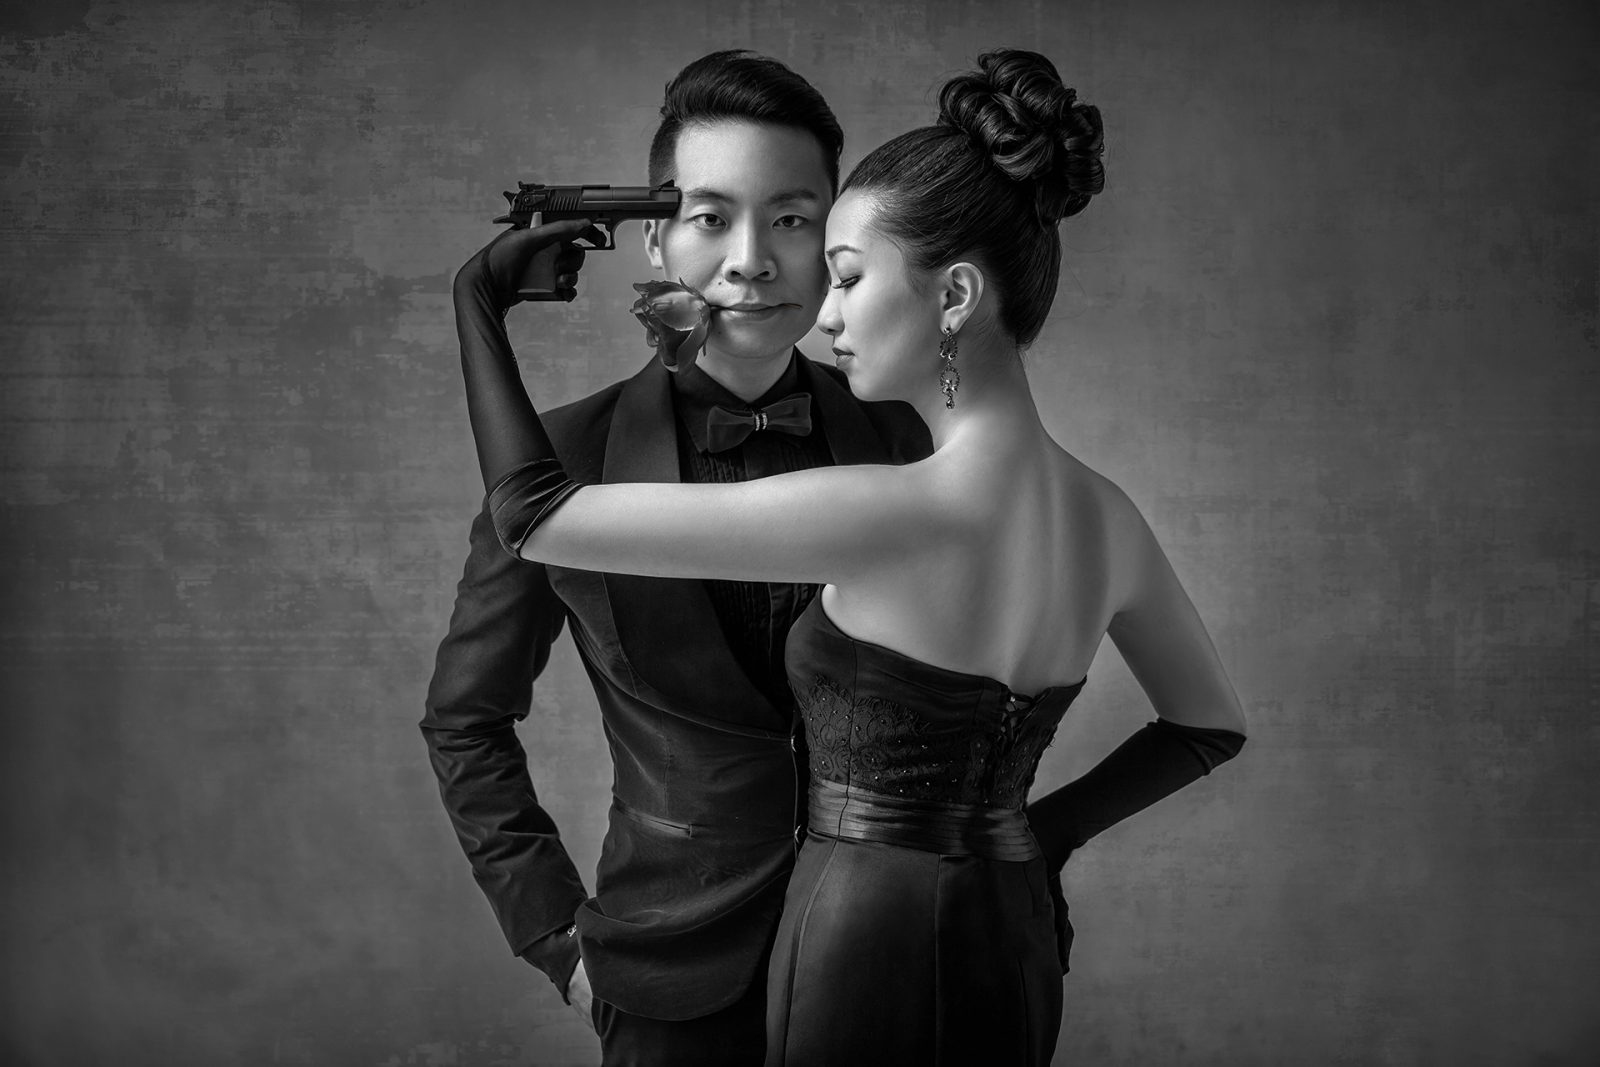 WPPI award0winning wedding photo by Leno Ooi from Destino Bridal